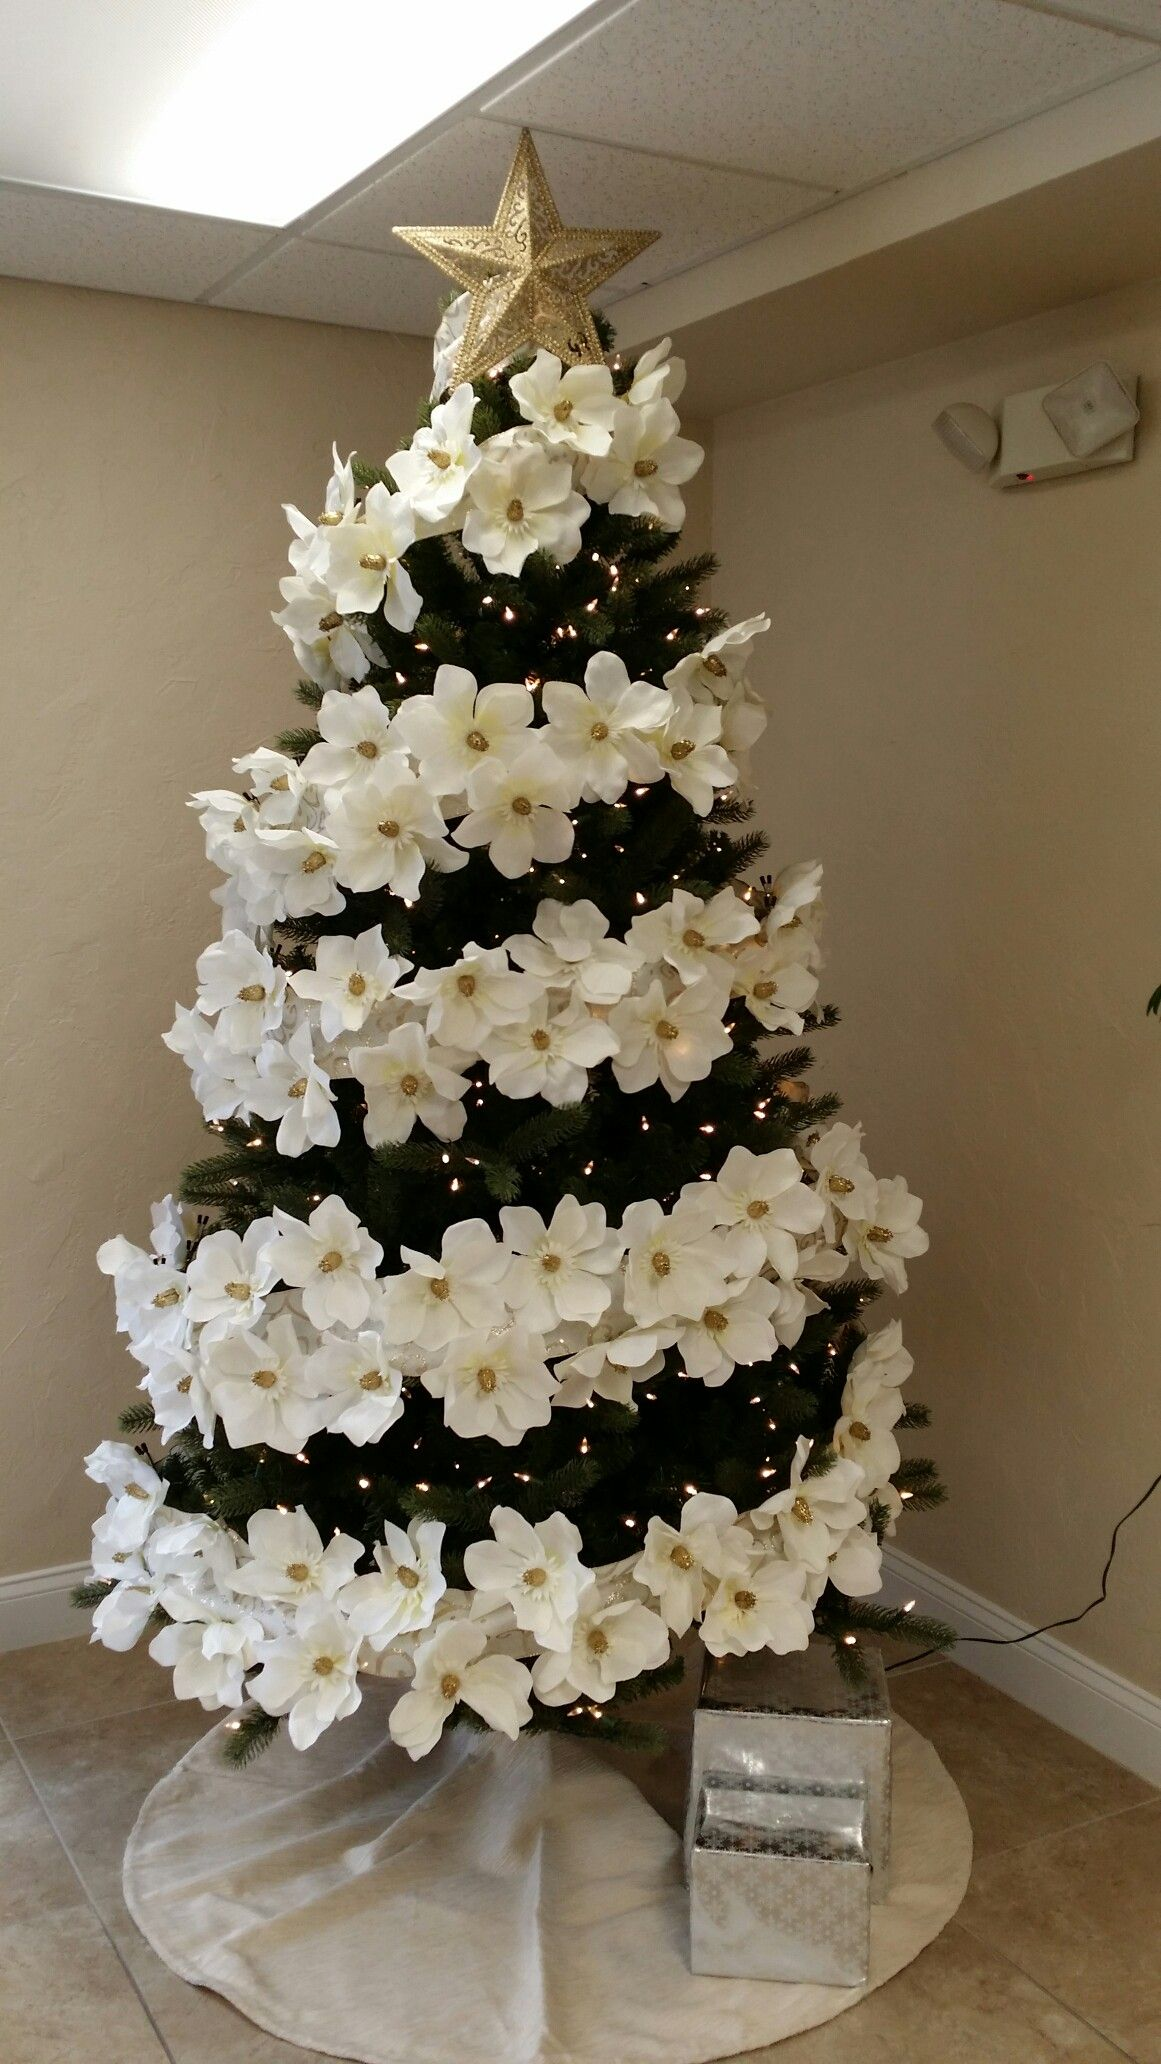 Christmas Tree With Magnolia Flowers I Love It I Decorated This Last Christmas At My Work Christmas Tree Flowers Floral Christmas Tree Cool Christmas Trees